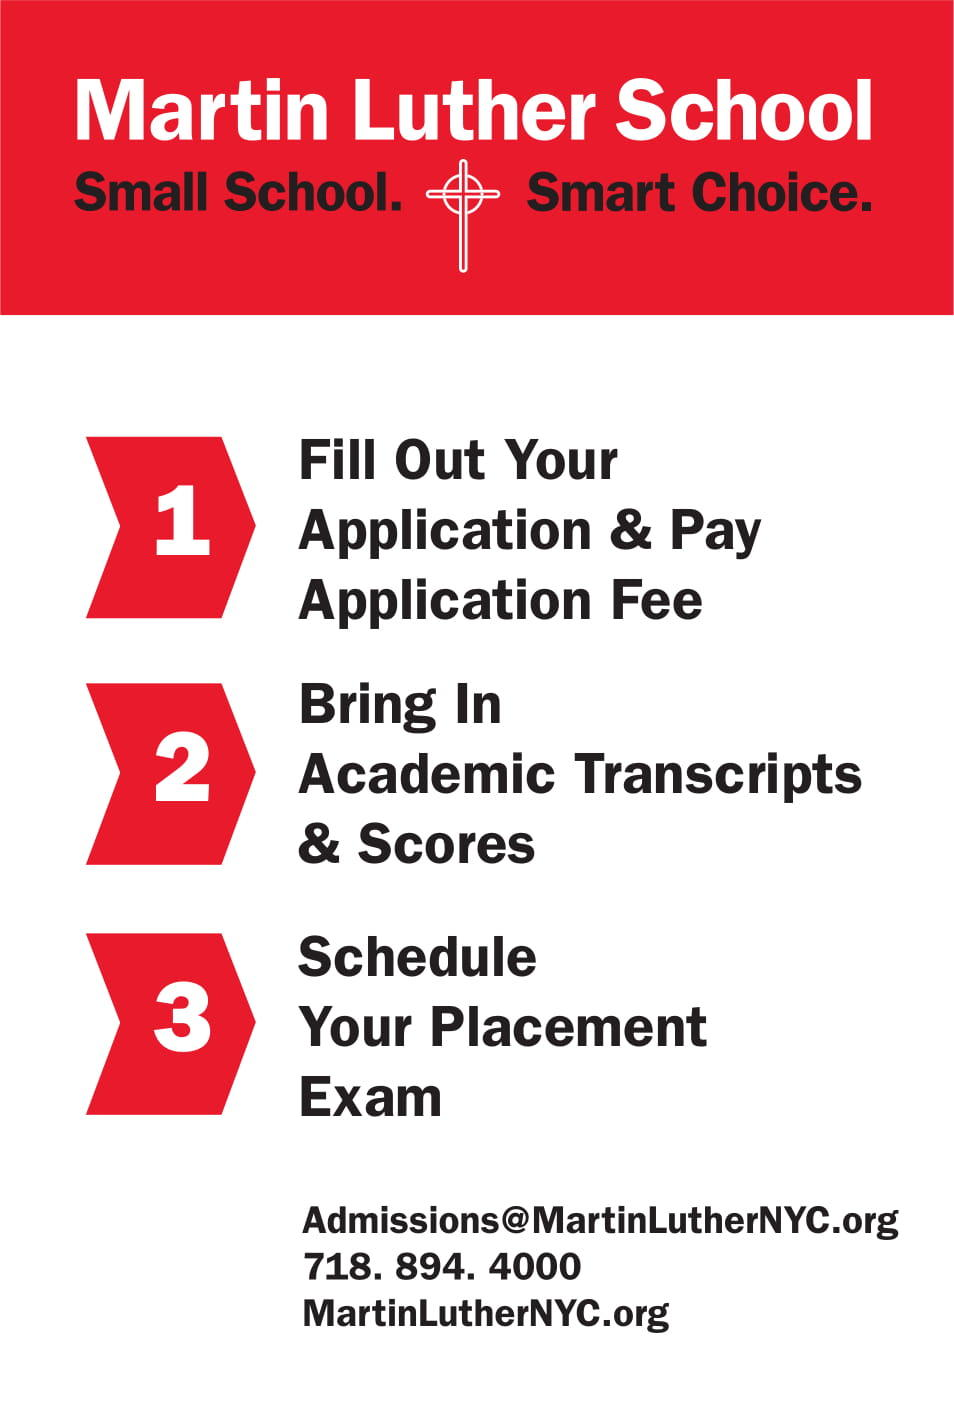 Infographic with the following: 1. Join us for MLS Cougar Day, 2. Fill out your application and pay application fee, 3. Schedule your placement exam, 4. Bring in academic transcripts and scores